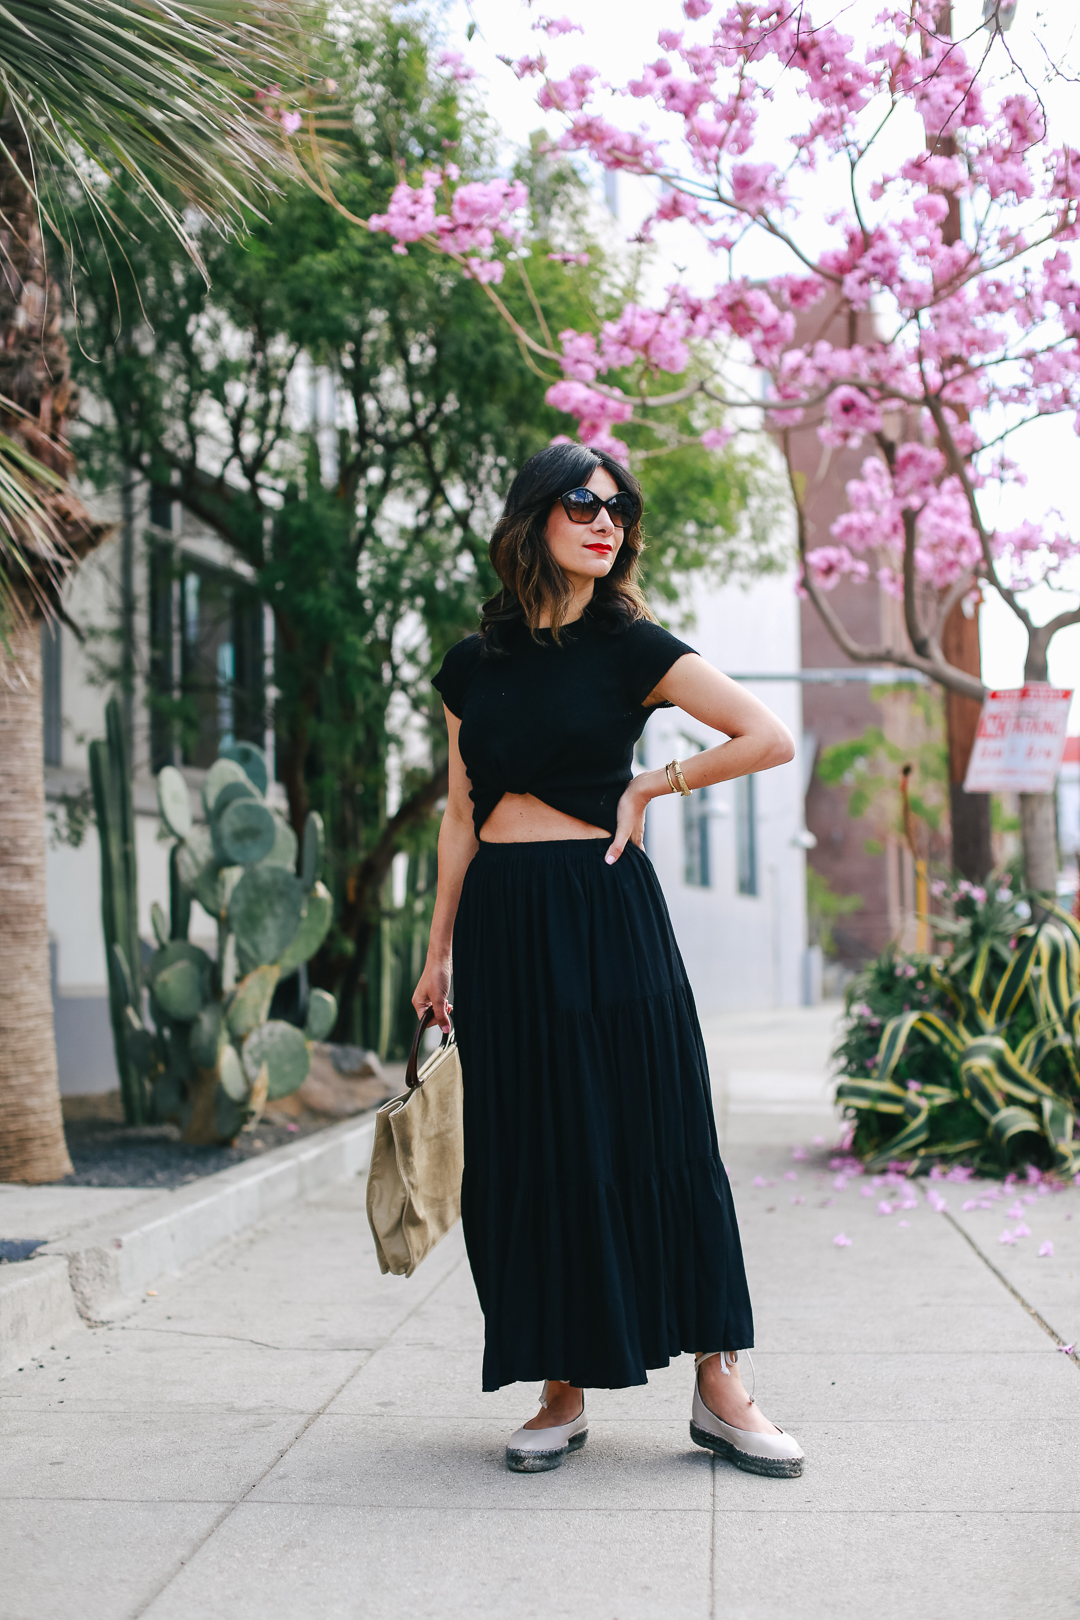 styling an all black skirt for spring